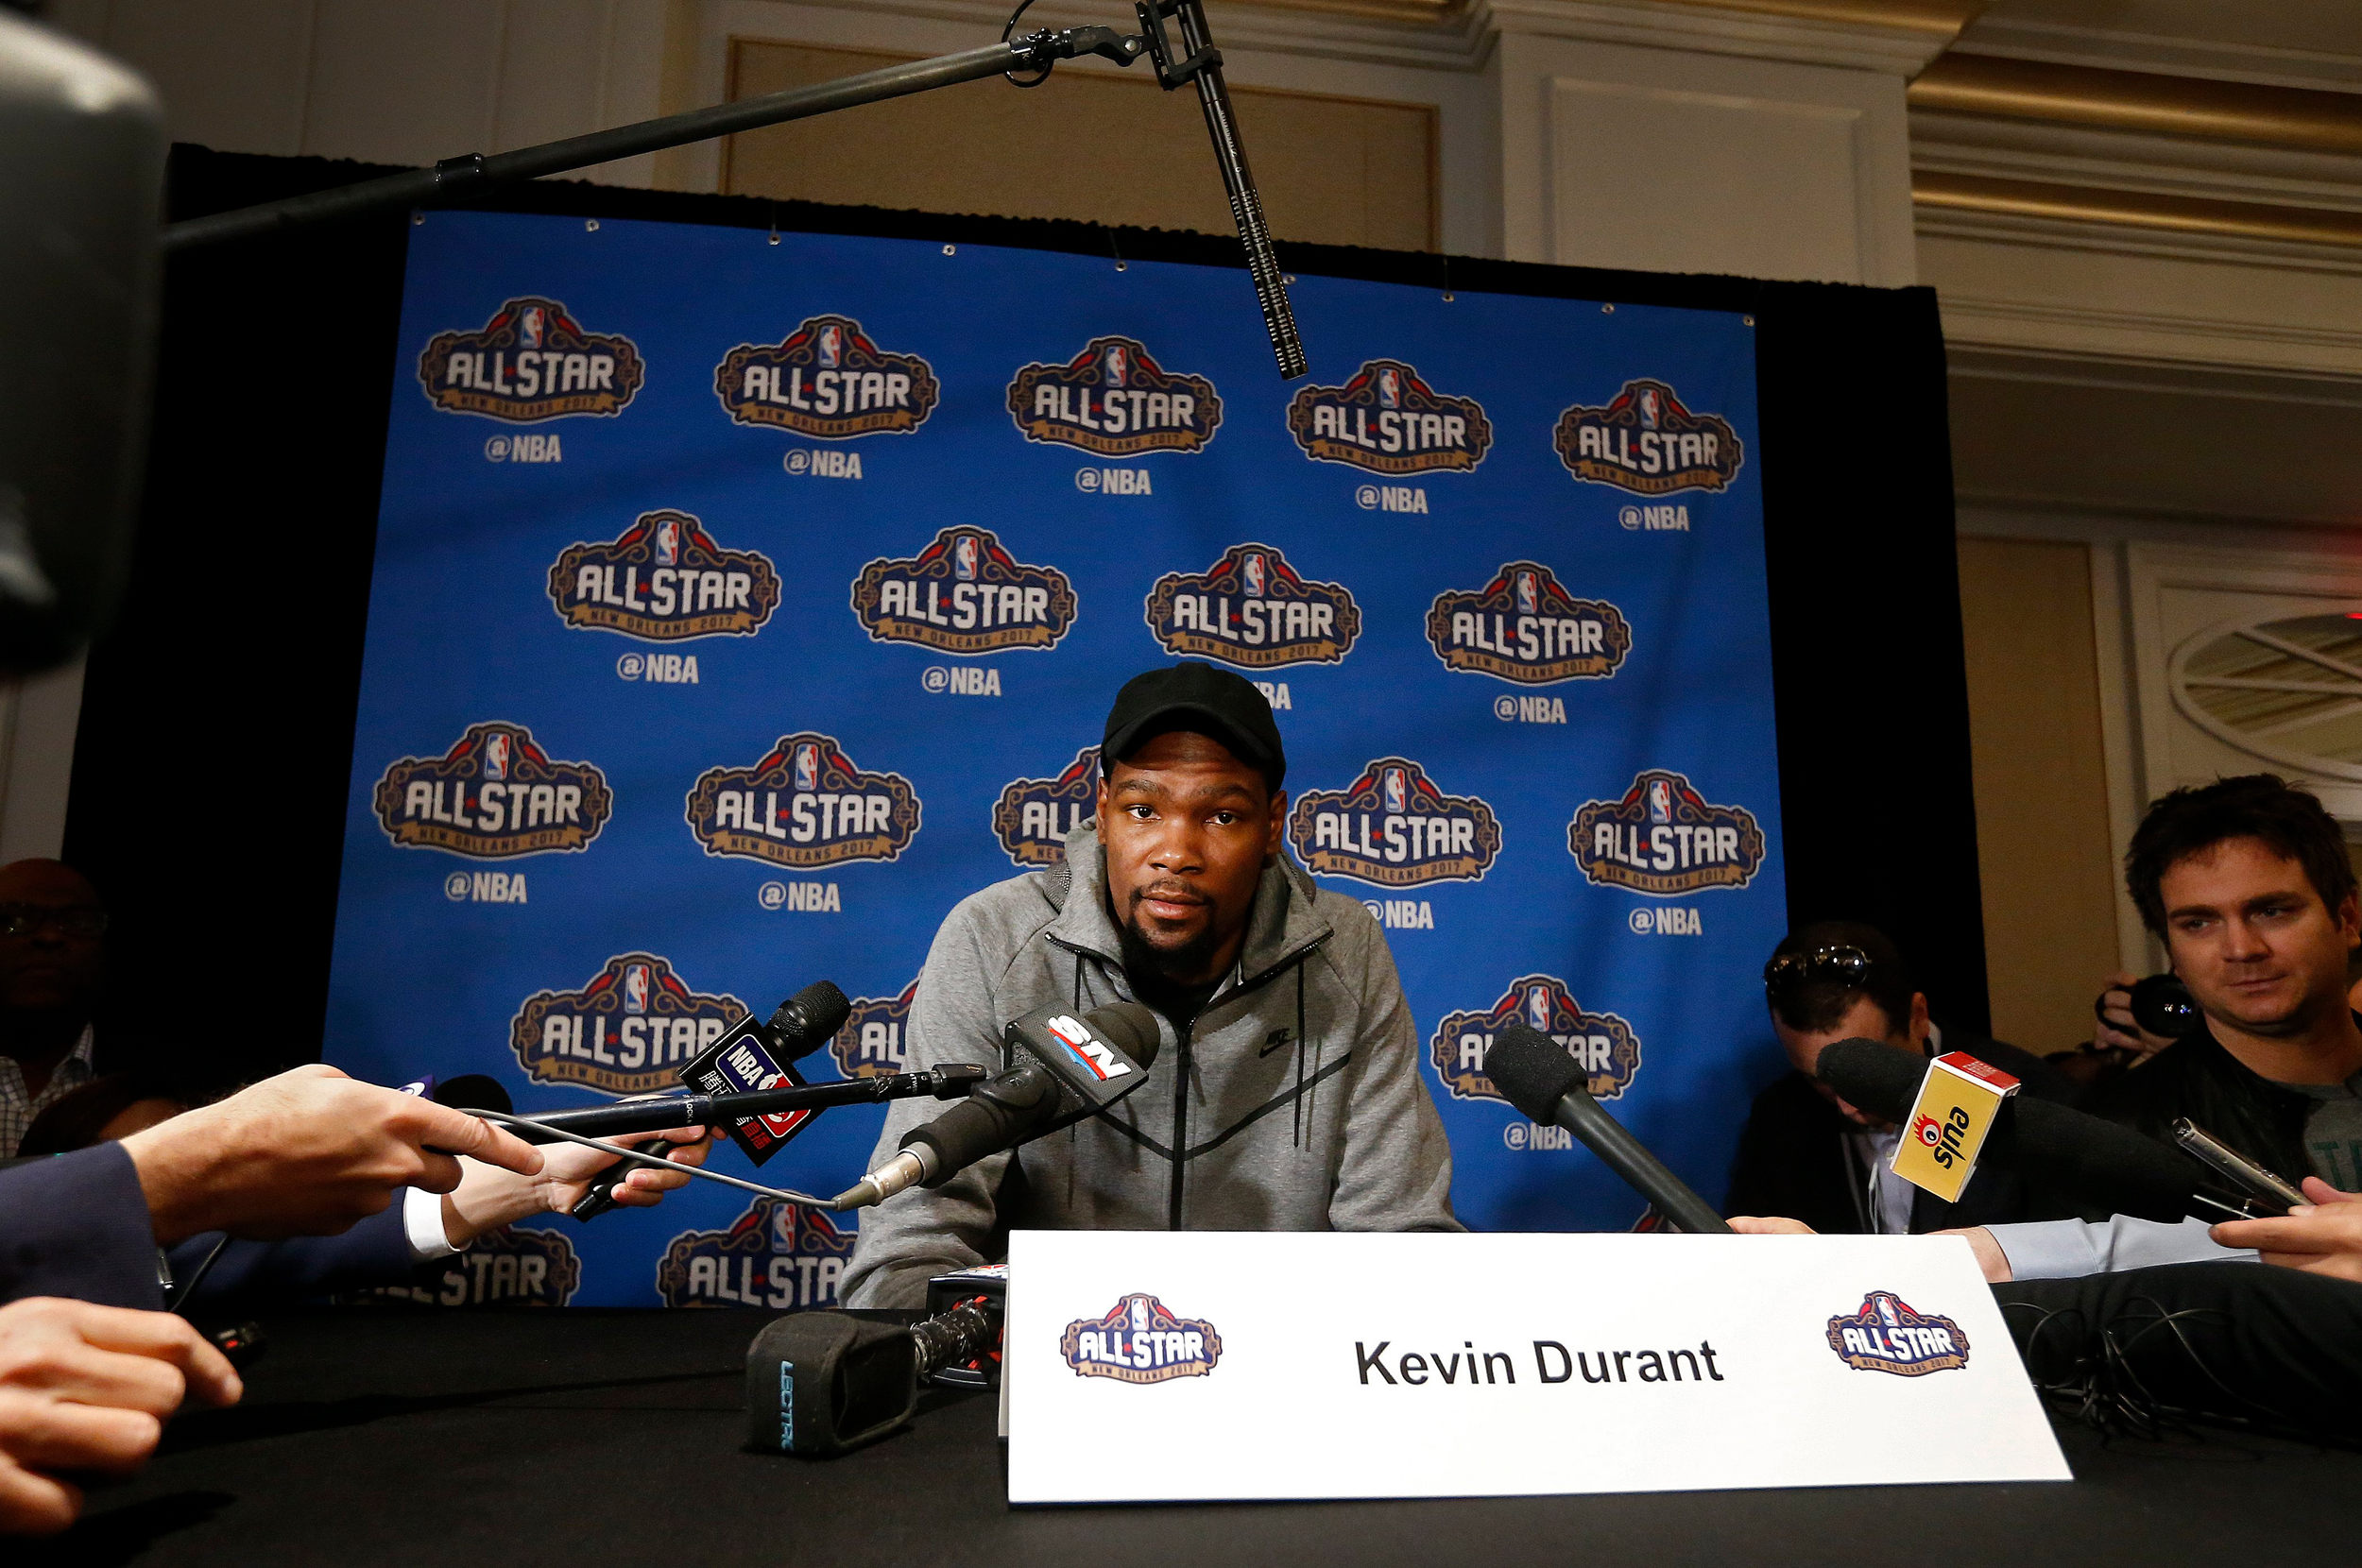 Golden State Warriors player Kevin Durant speaks to the media during NBA All-Star media availability at the Ritz Carlton in New Orleans, Louisiana, USA, 17 February 2017.